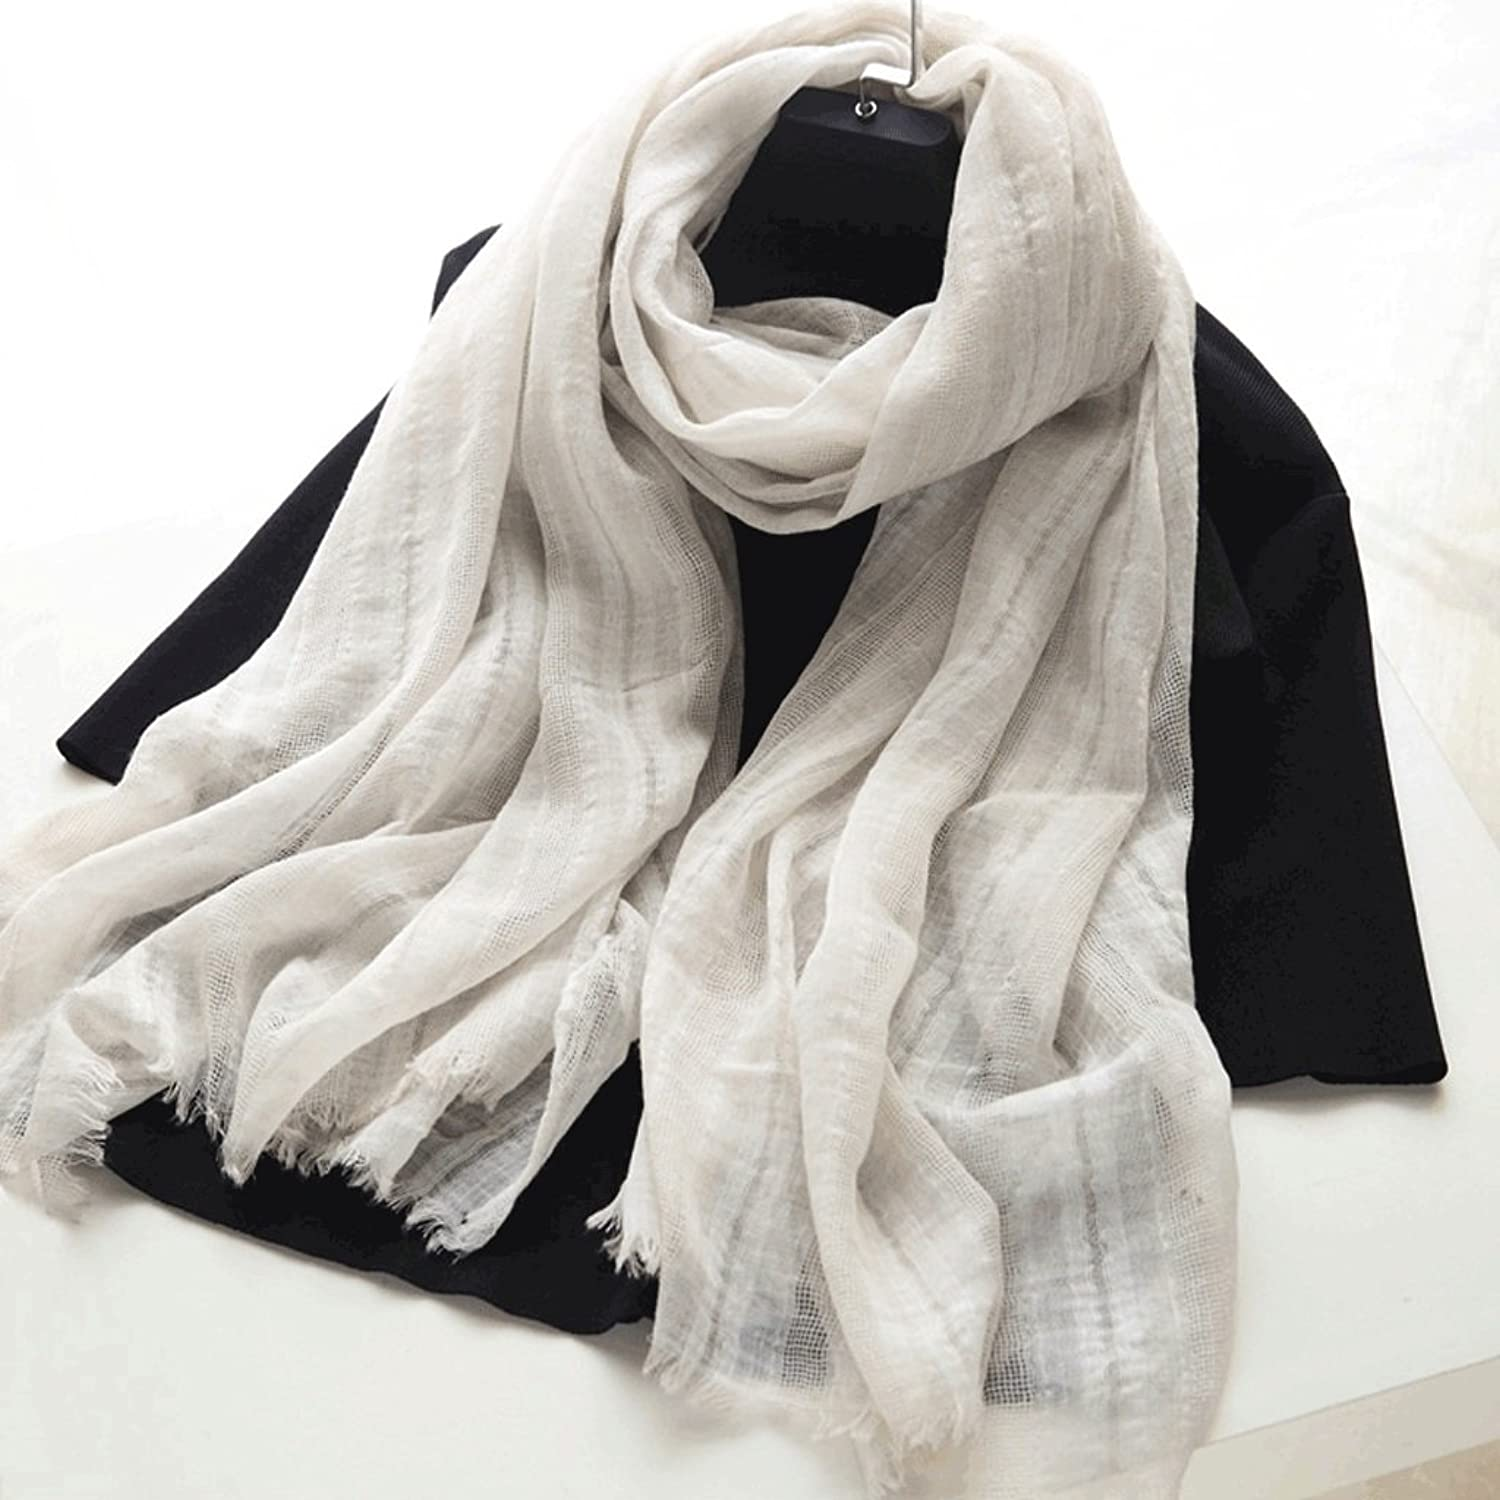 LBY Pure Cotton Linen Blend Scarf Shawl Winter Warm Literary Female Scarf 92  190cm Scarf (color   C)